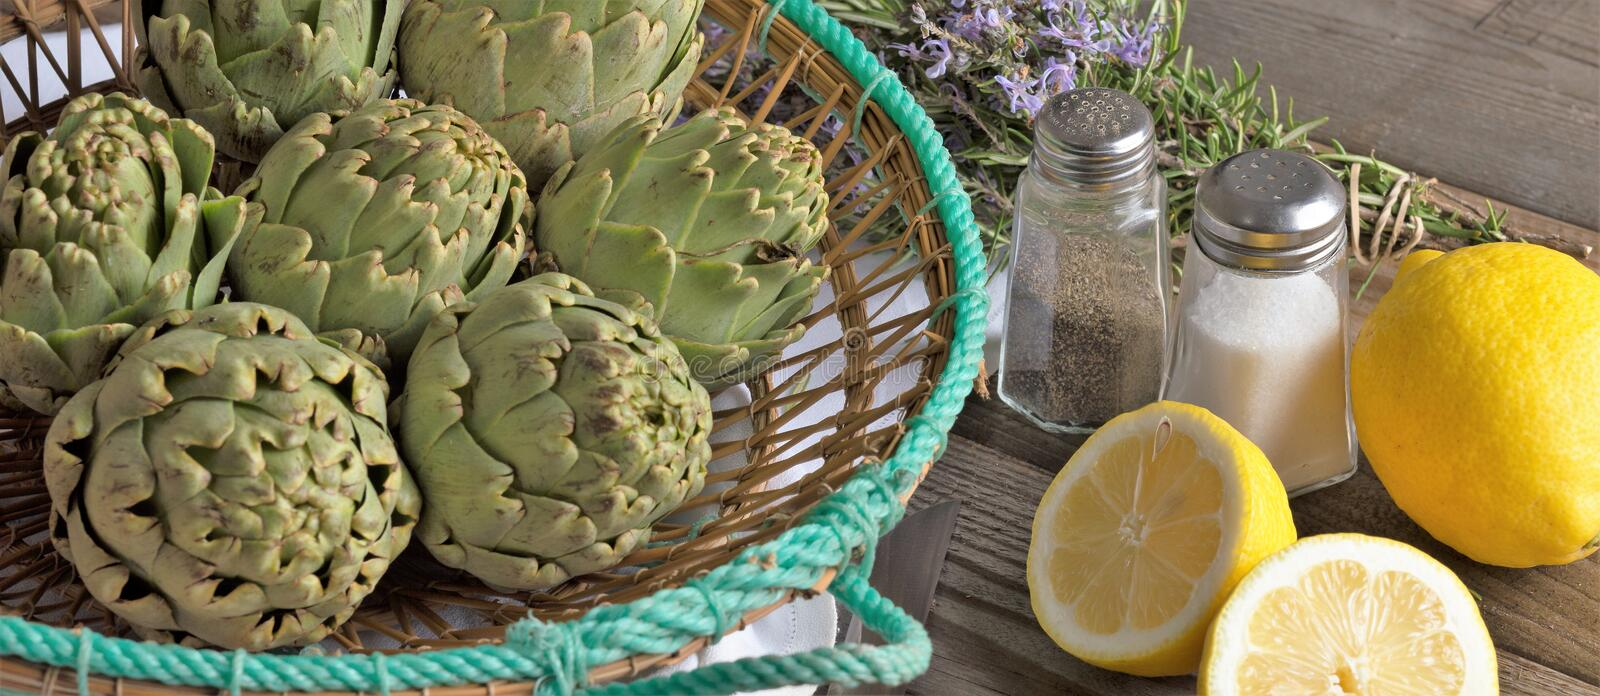 Artichoke. With lemon and pine nuts, field, head, agriculture, thistle, botanic, blossom, organic, cooking, vegetable, beautiful, edible, botanical, background royalty free stock image